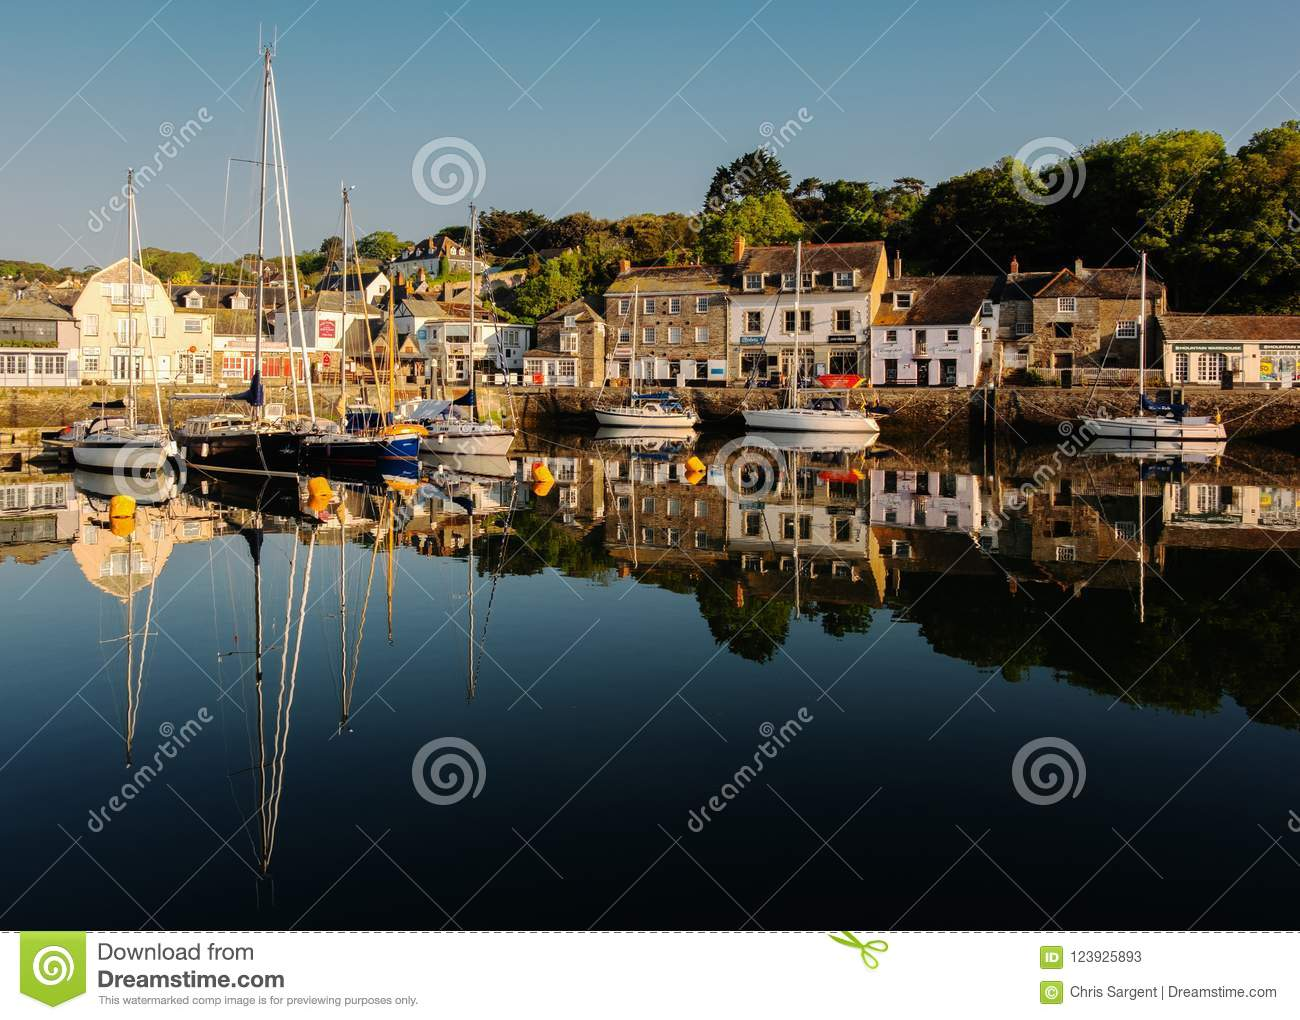 Padstow-Hafen in Cornwall